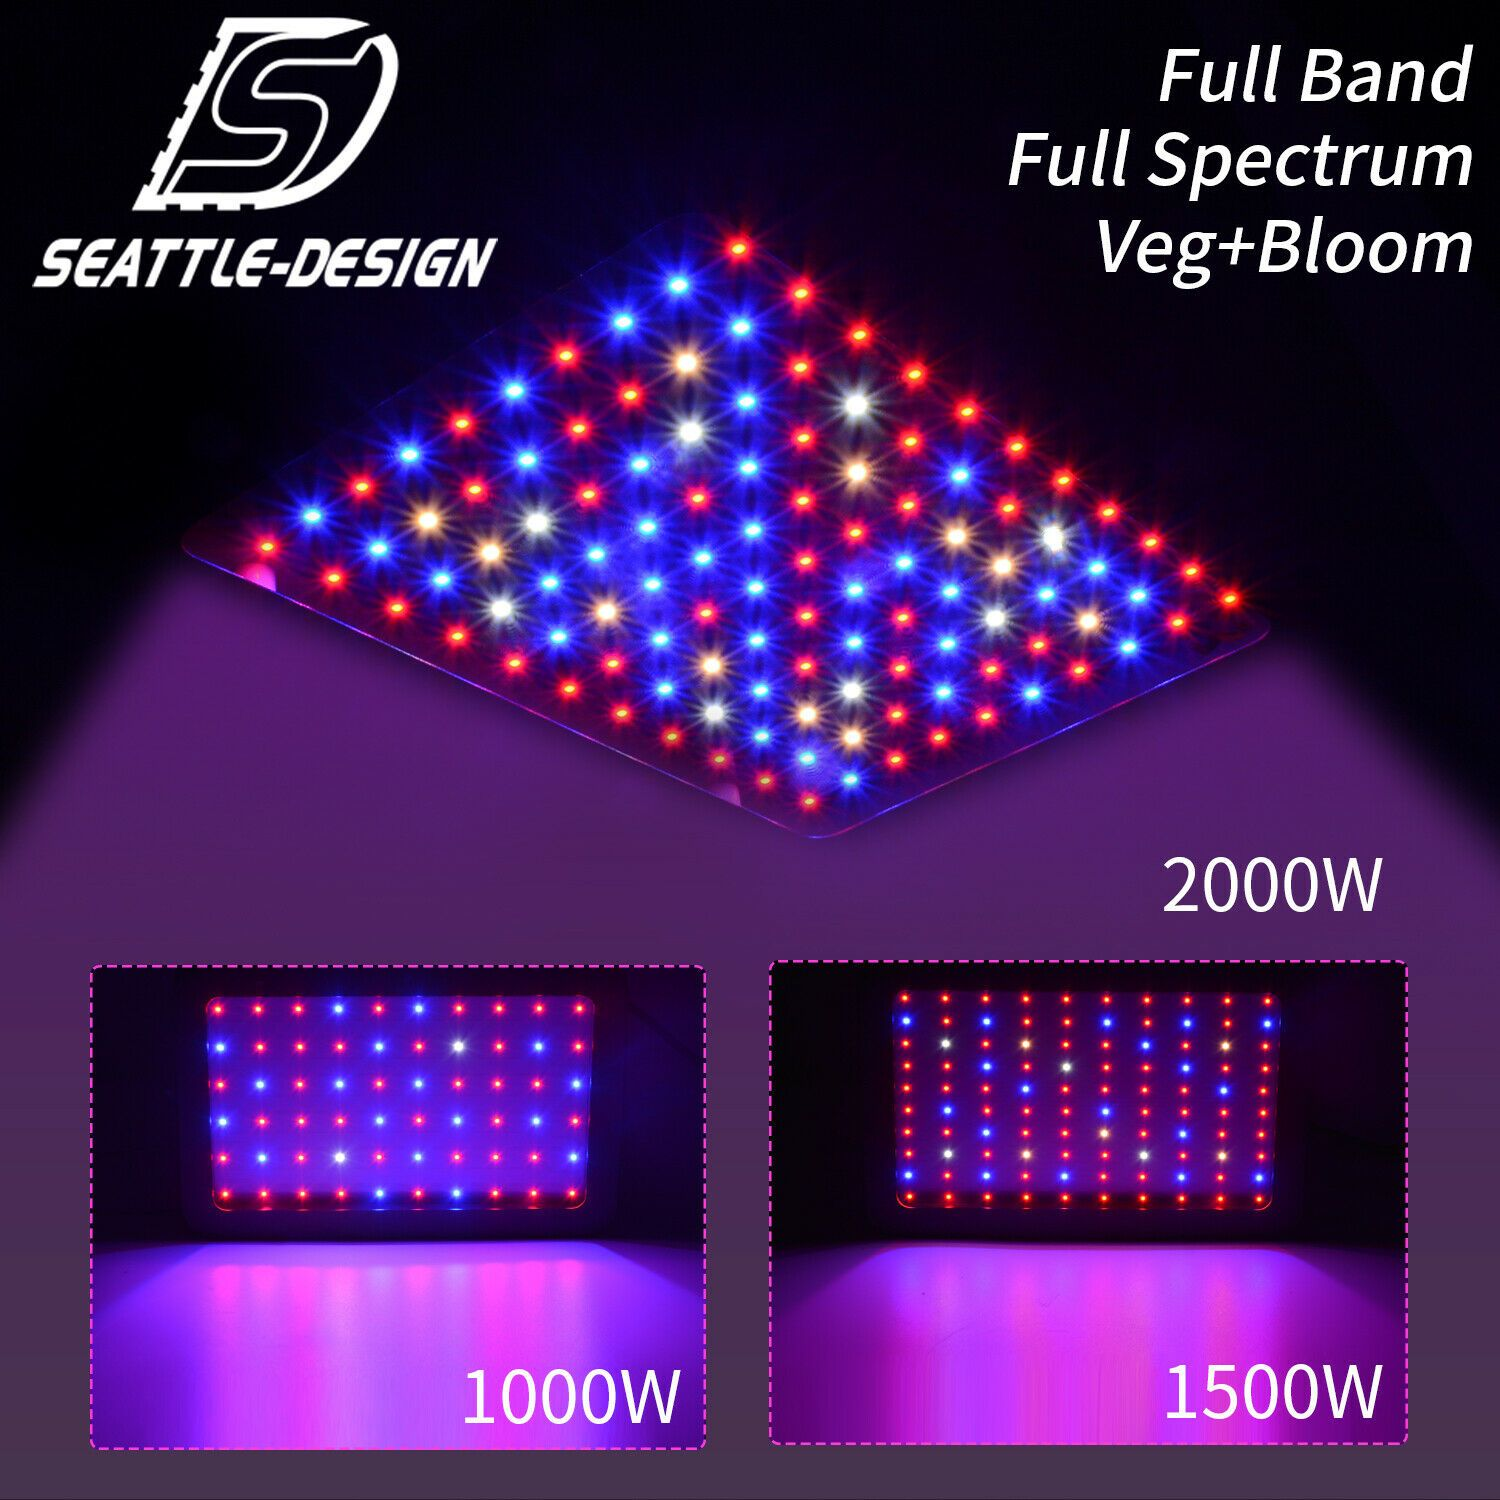 2000w 1500w 1000w Led Grow Light Full Spectrum Veg Bloom Dual Switch Hydroponic In 2020 Led Grow Lights Grow Lights Led Grow